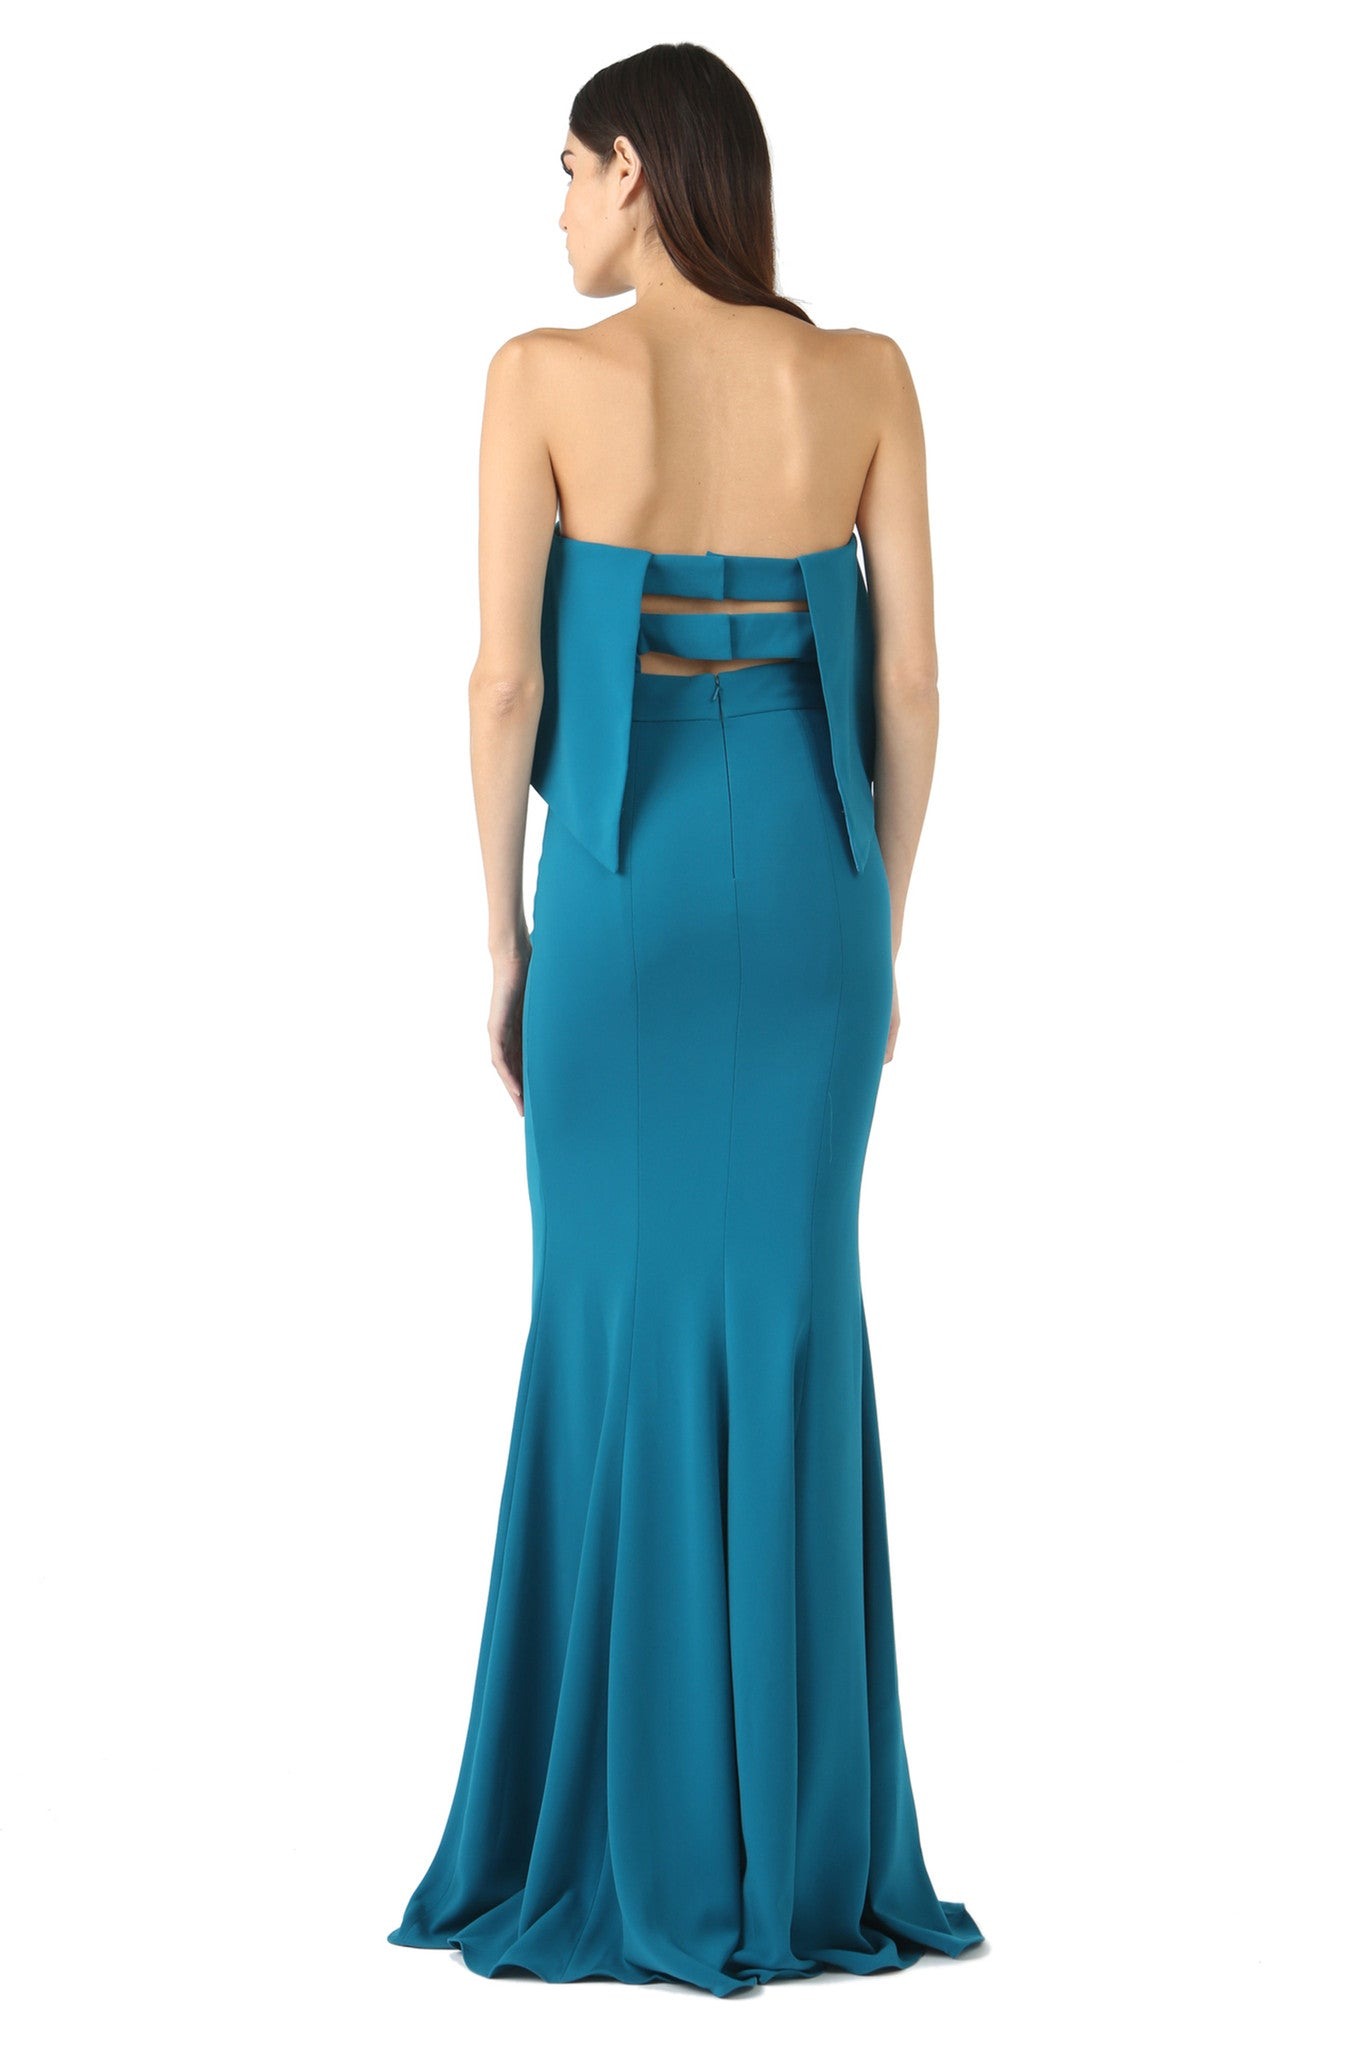 Jay Godfrey Teal Strapless Tiered Gown - Back View